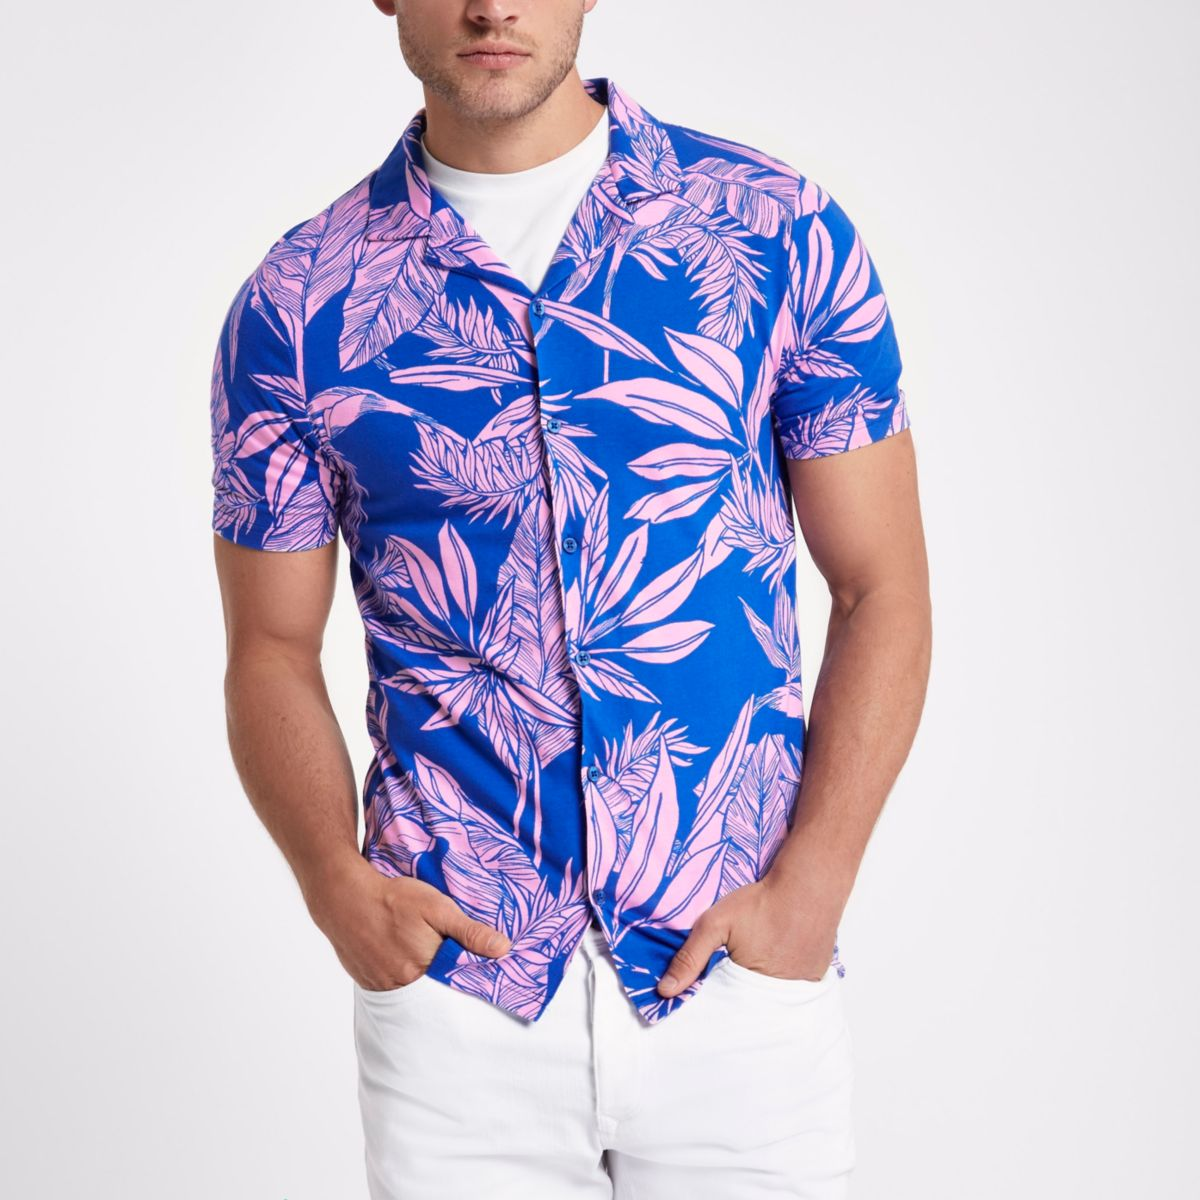 Blue muscle fit tropical print jersey shirt